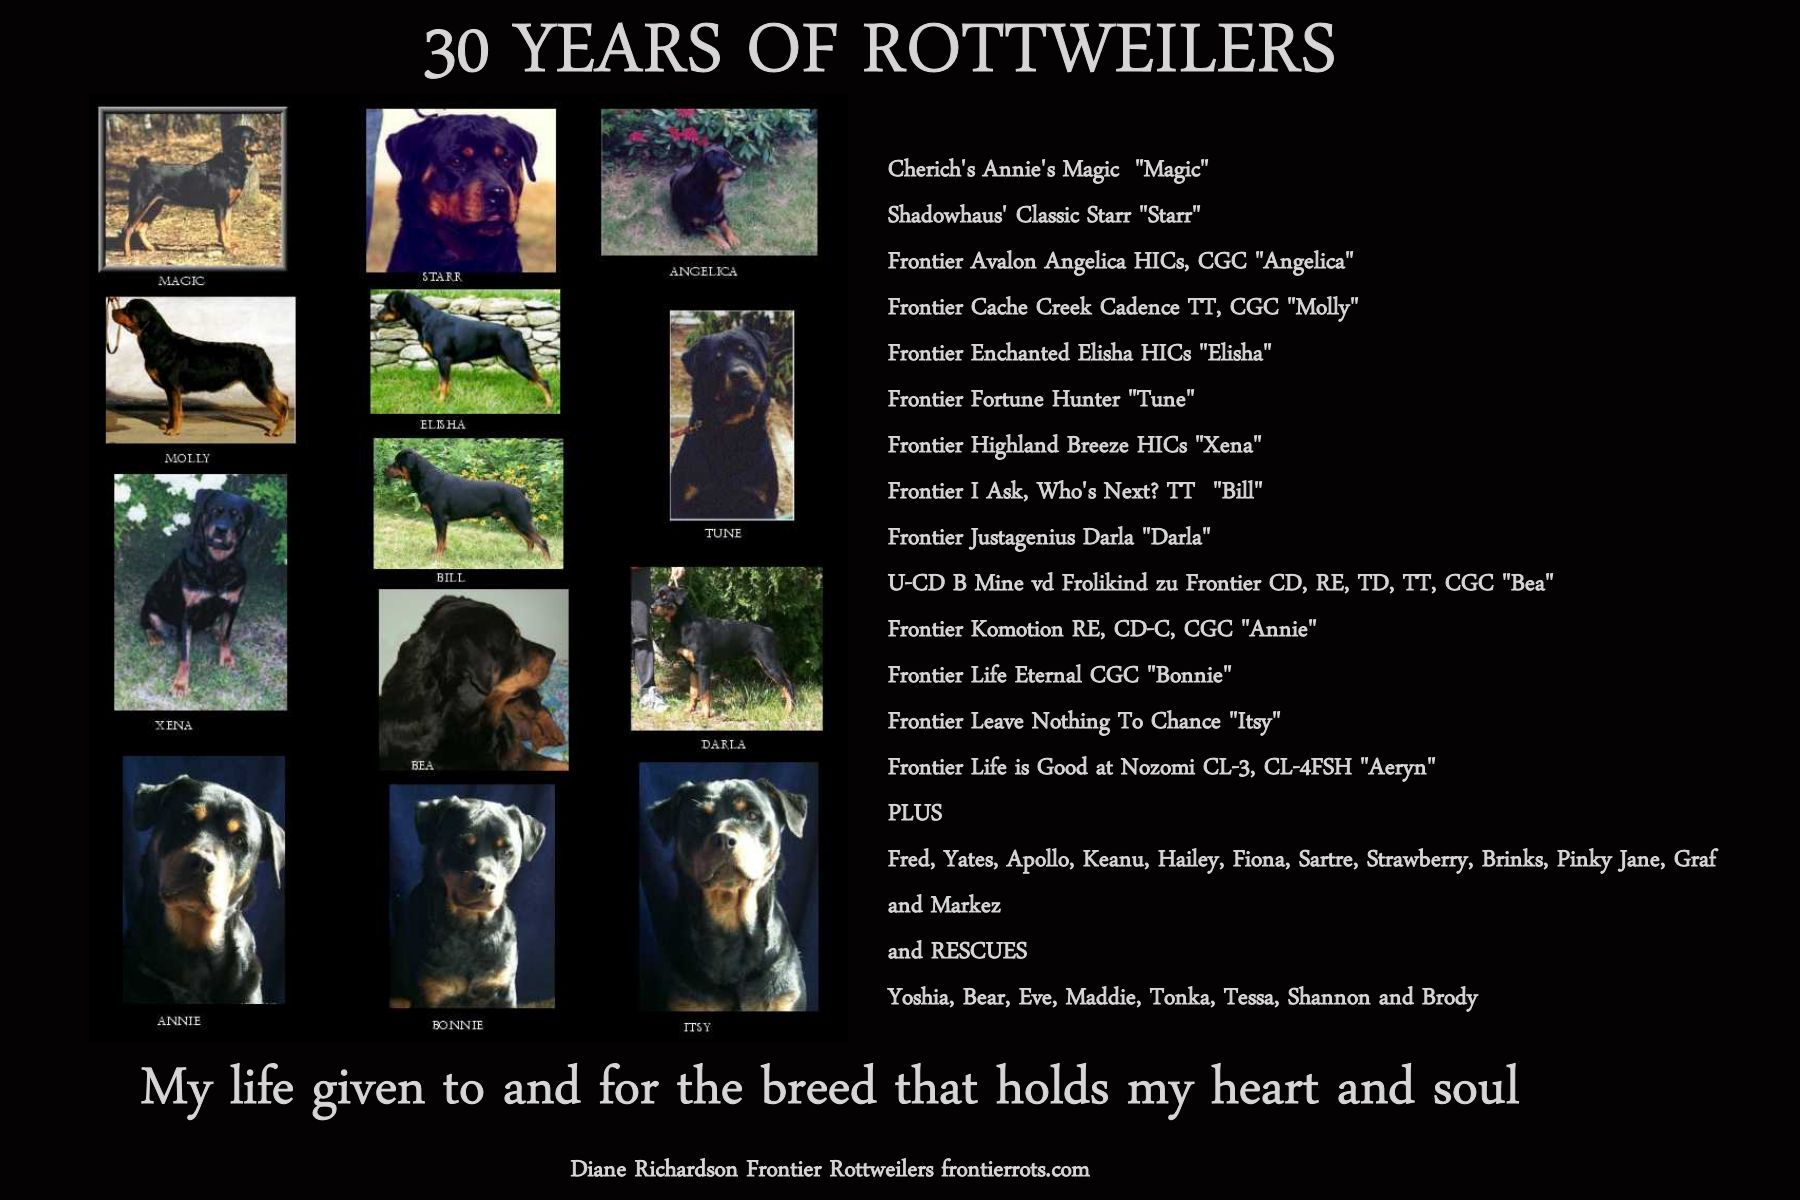 30 years rottweilers